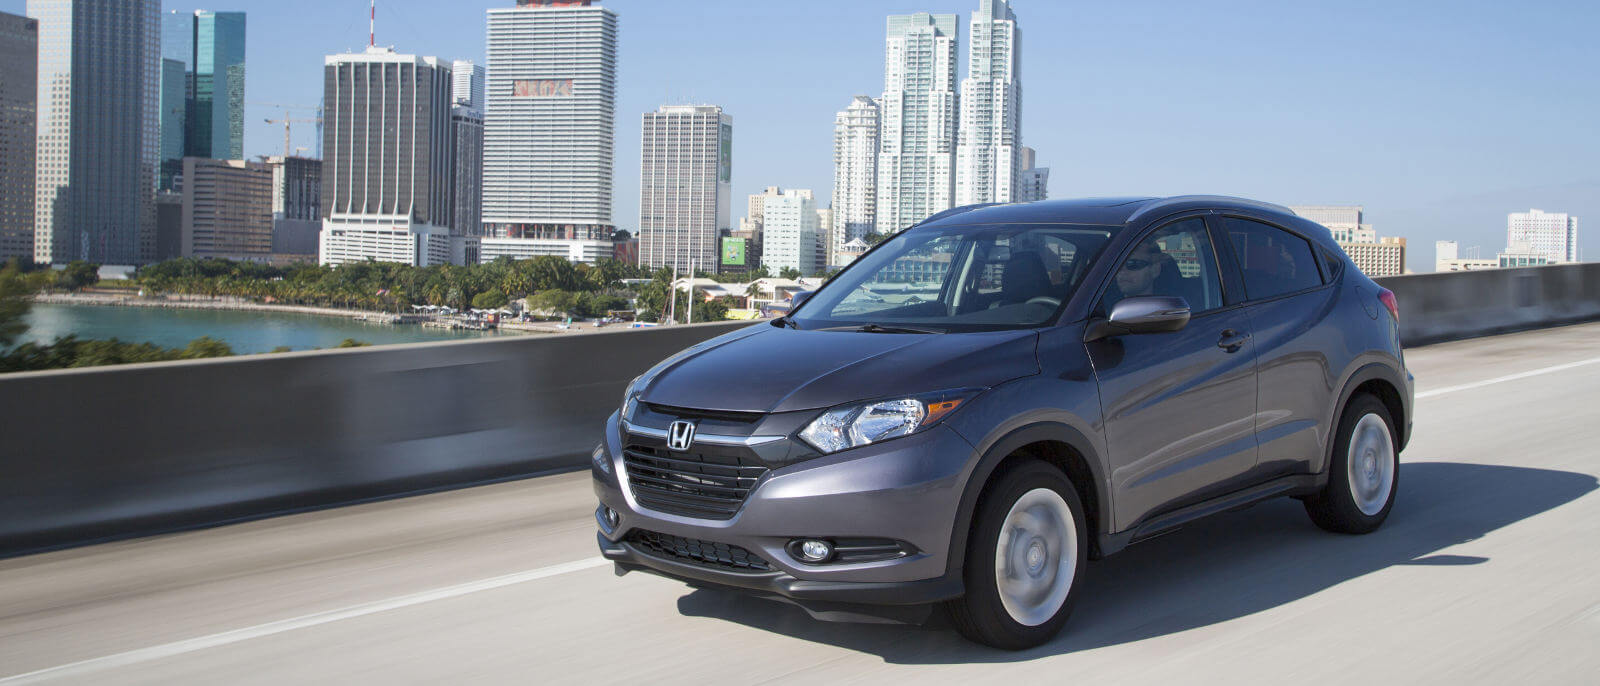 2016 Honda HR-V city driving